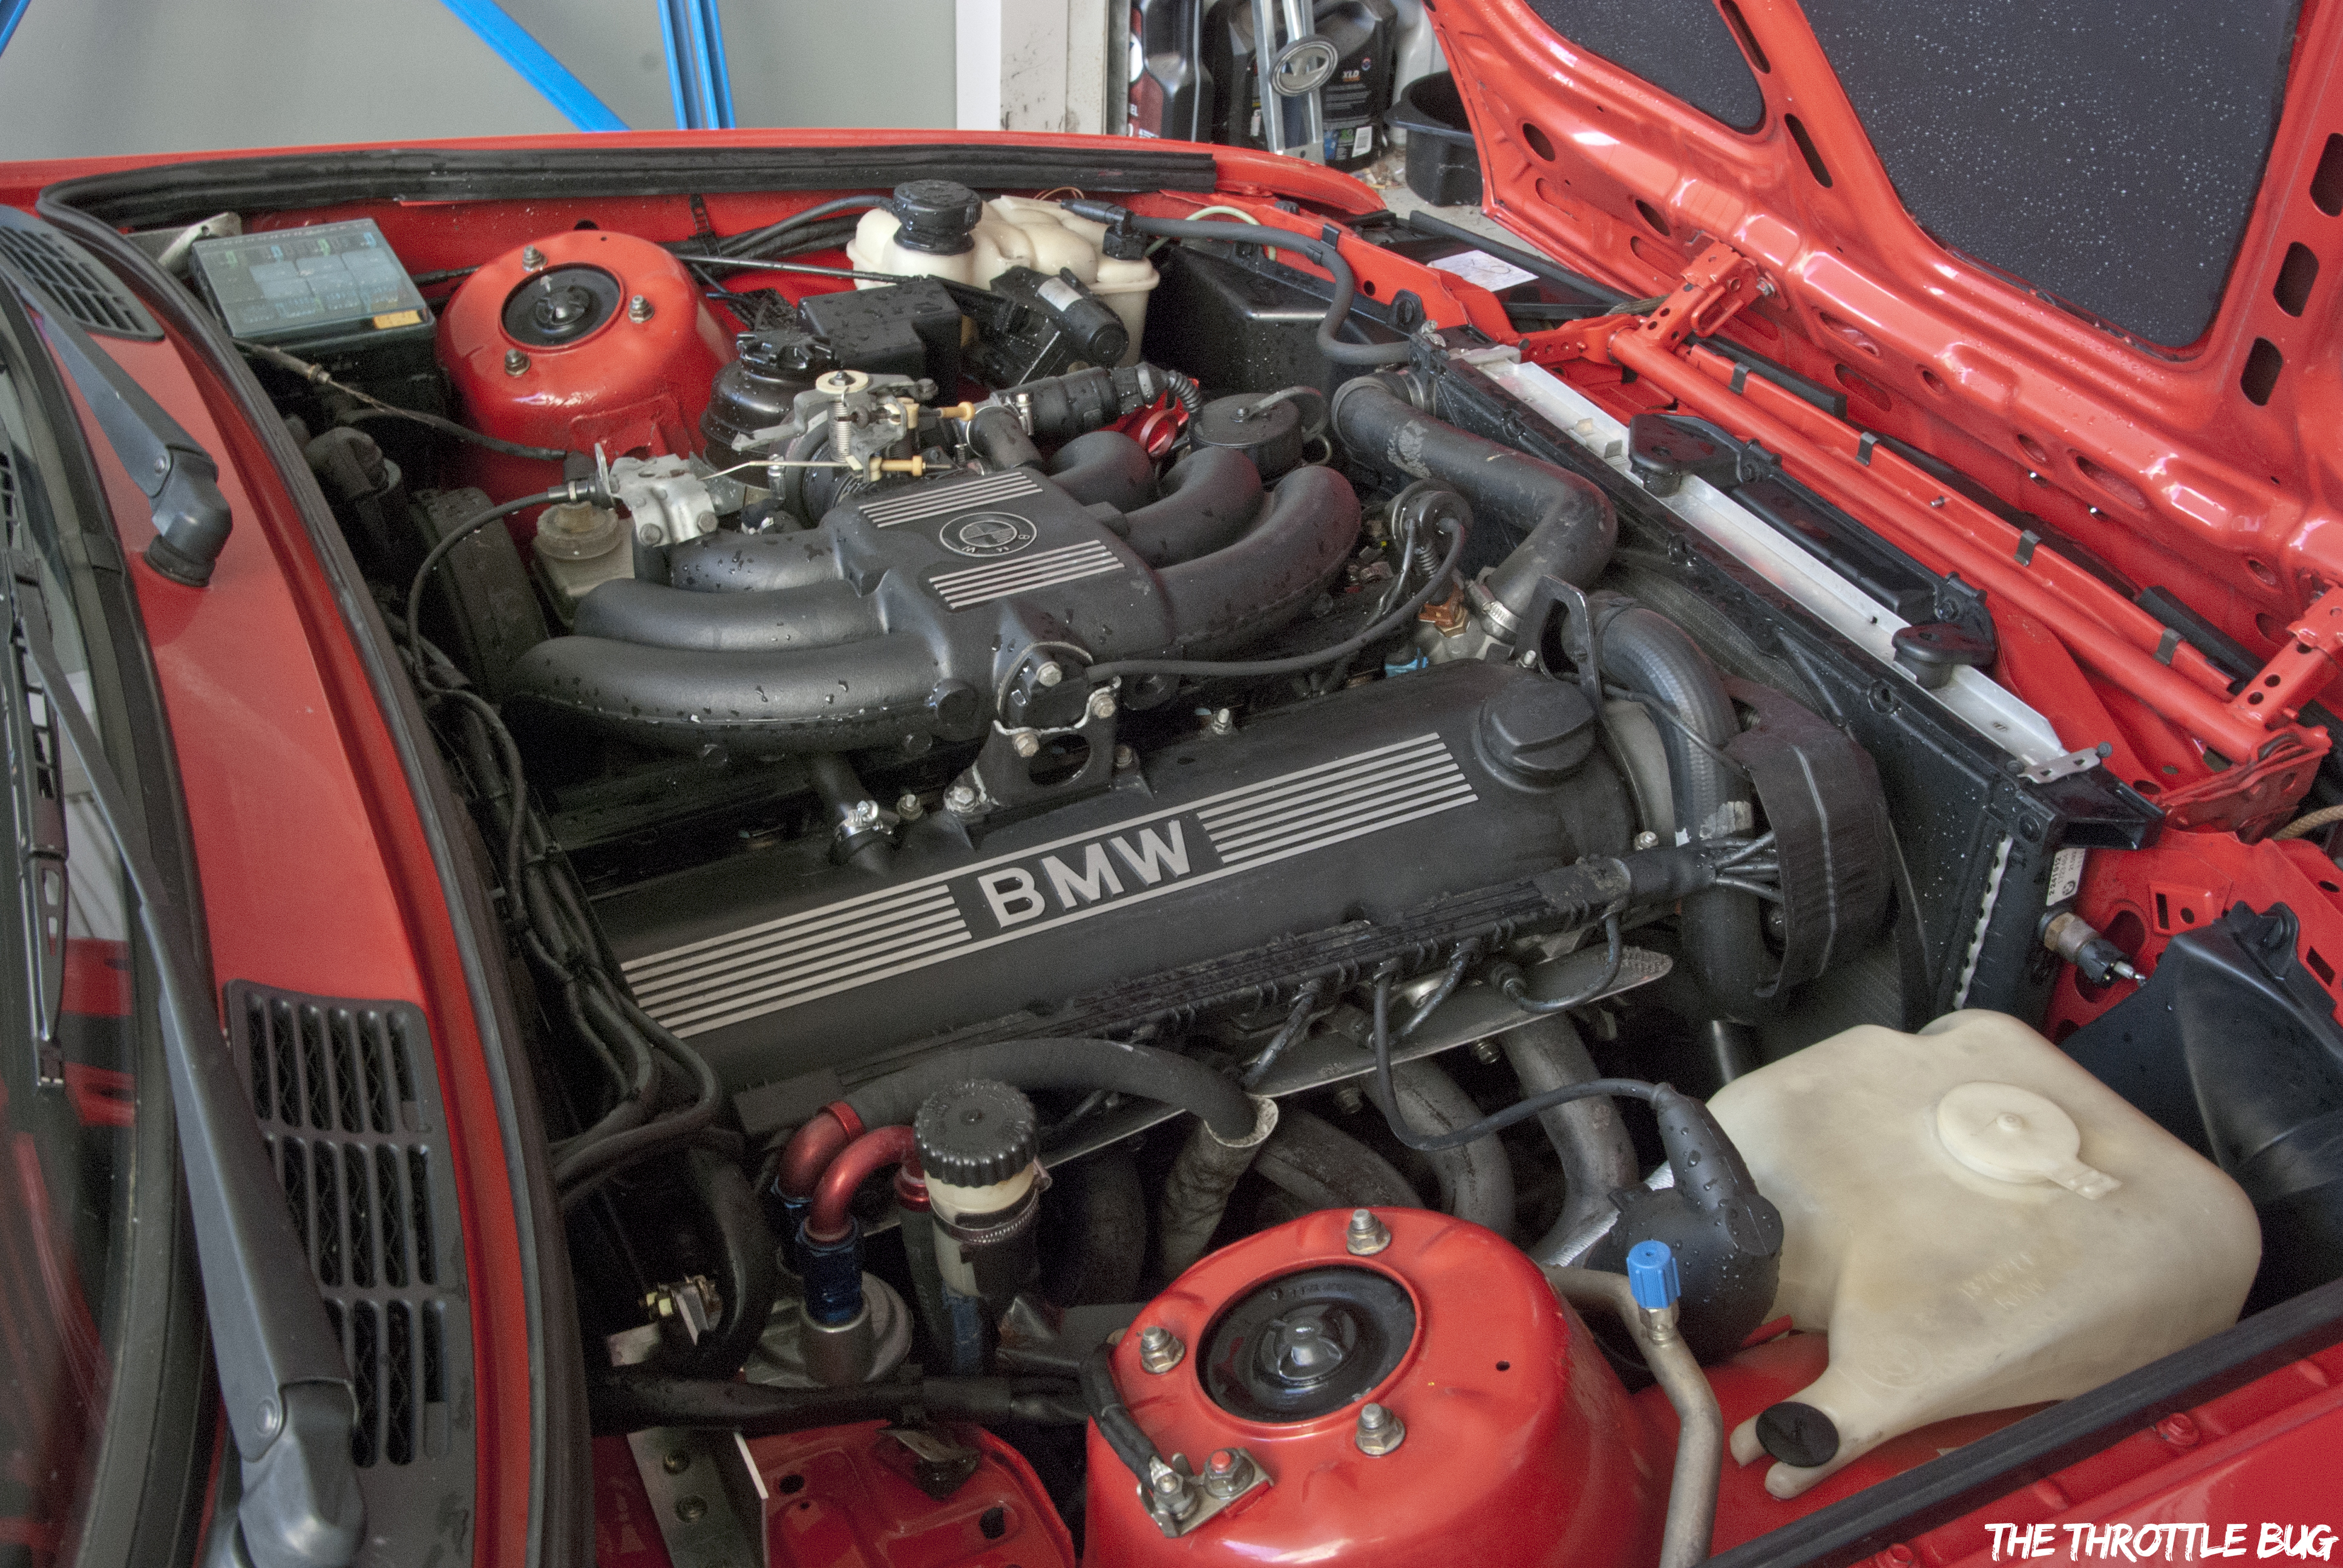 E30 Engine Bay Diagram. tag for bmw 325is box shape engine e36 325is engine  bay. my project 1987 bmw 325is e30 engine bay painted and. e30 engine bay  engine diagram. diagrams wiring